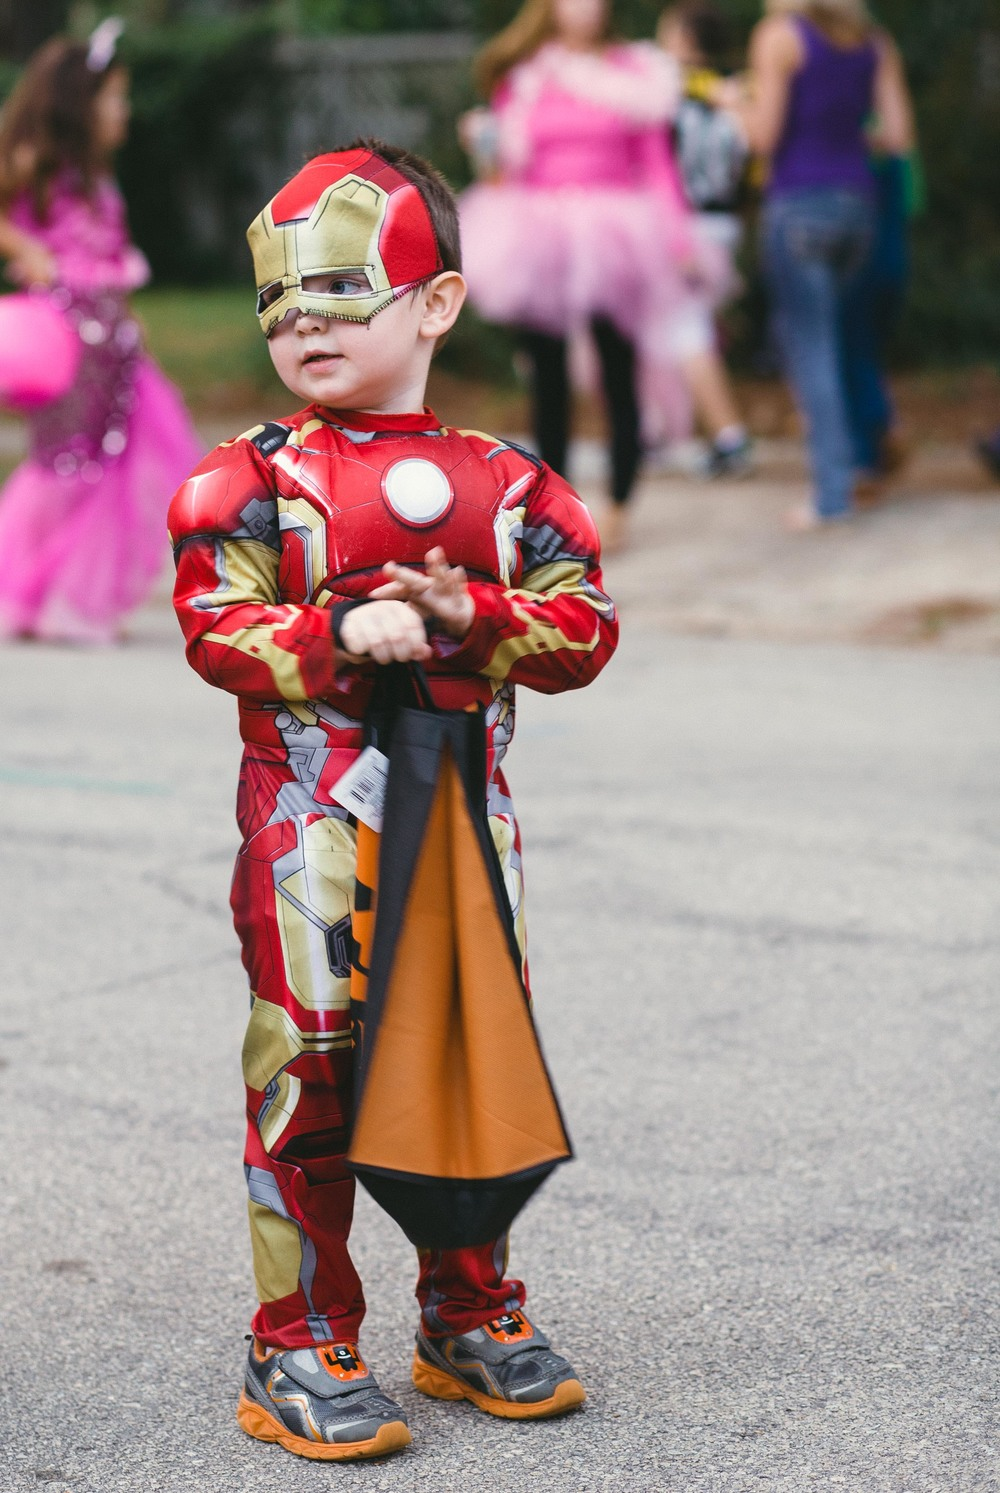 tallahassee-photography-halloween-8719.jpg